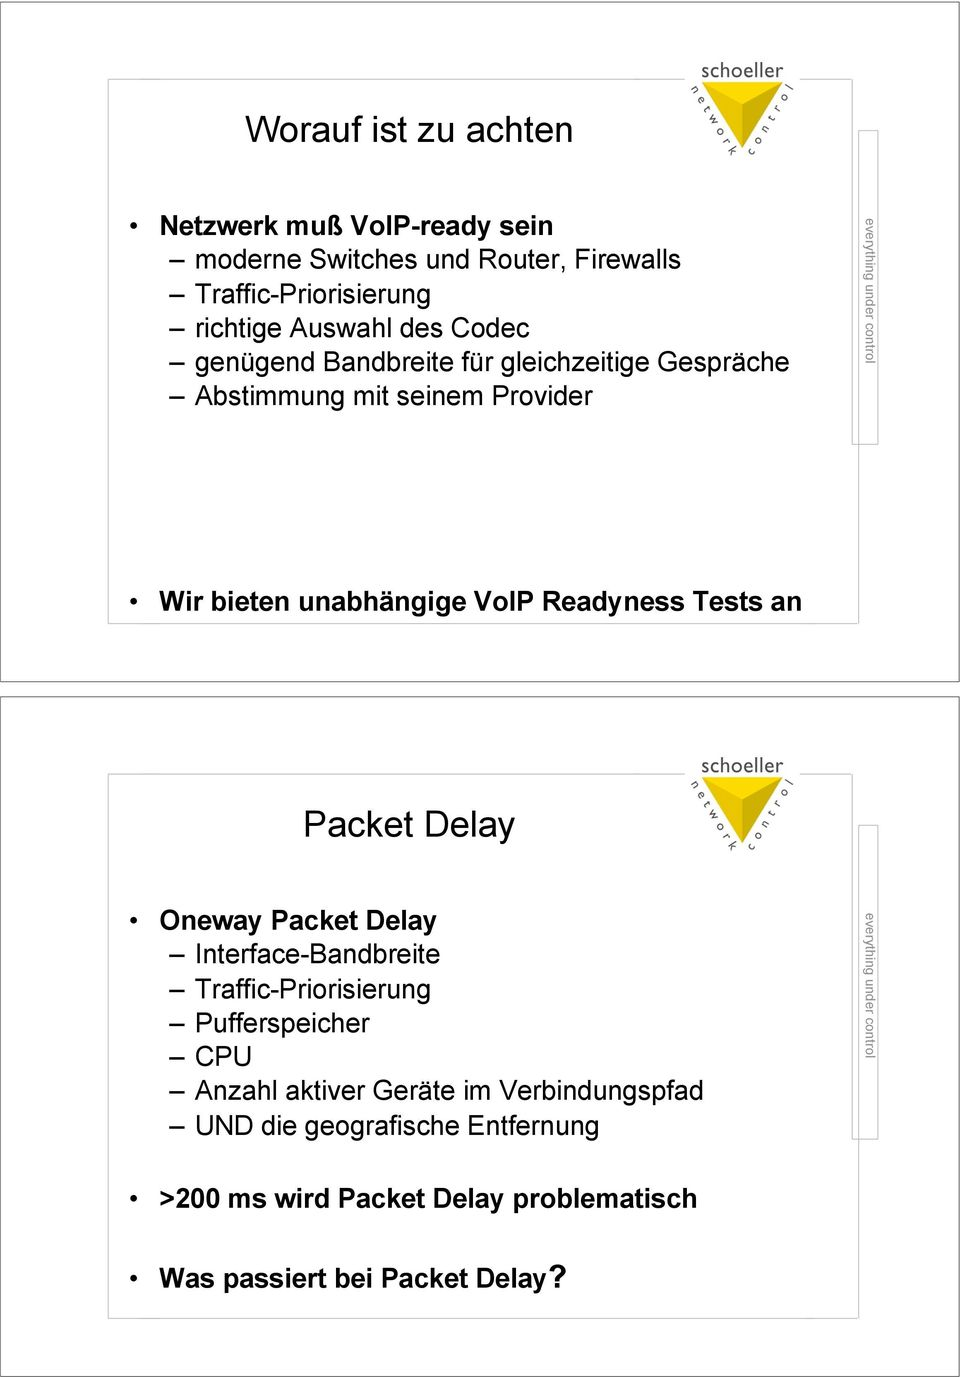 Wir bieten unabhängige VoIP Readyness Tests an Packet Delay! Oneway Packet Delay! Interface-Bandbreite! Traffic-Priorisierung!